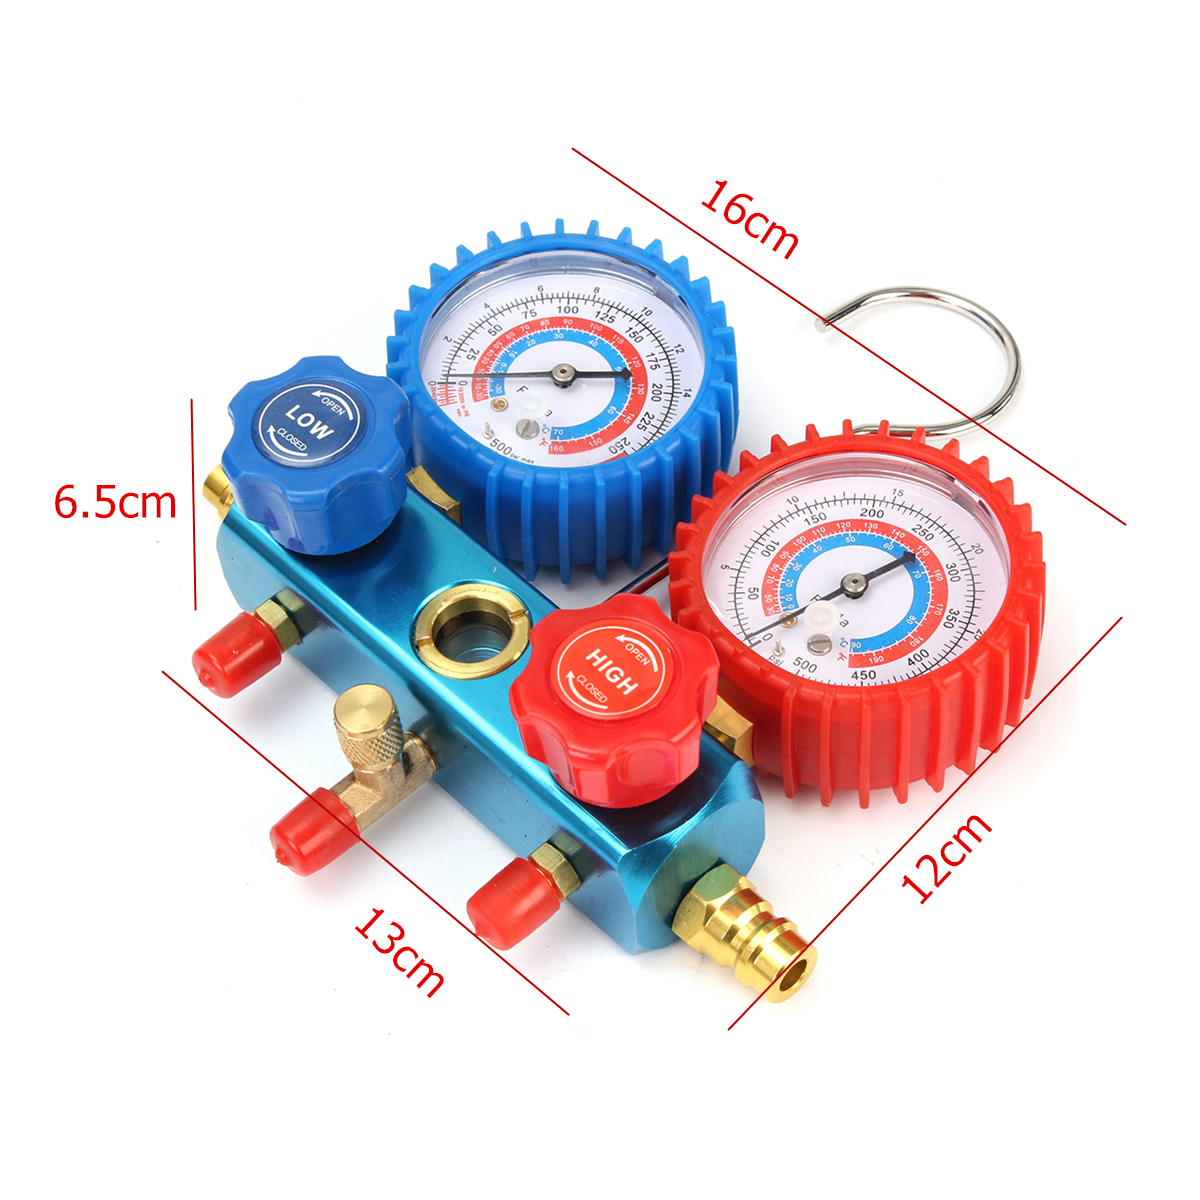 0-800 MPa Car Refrigerant Manifold Gauge Set Car Air Conditioning Cooling Equipment Tools With Tube